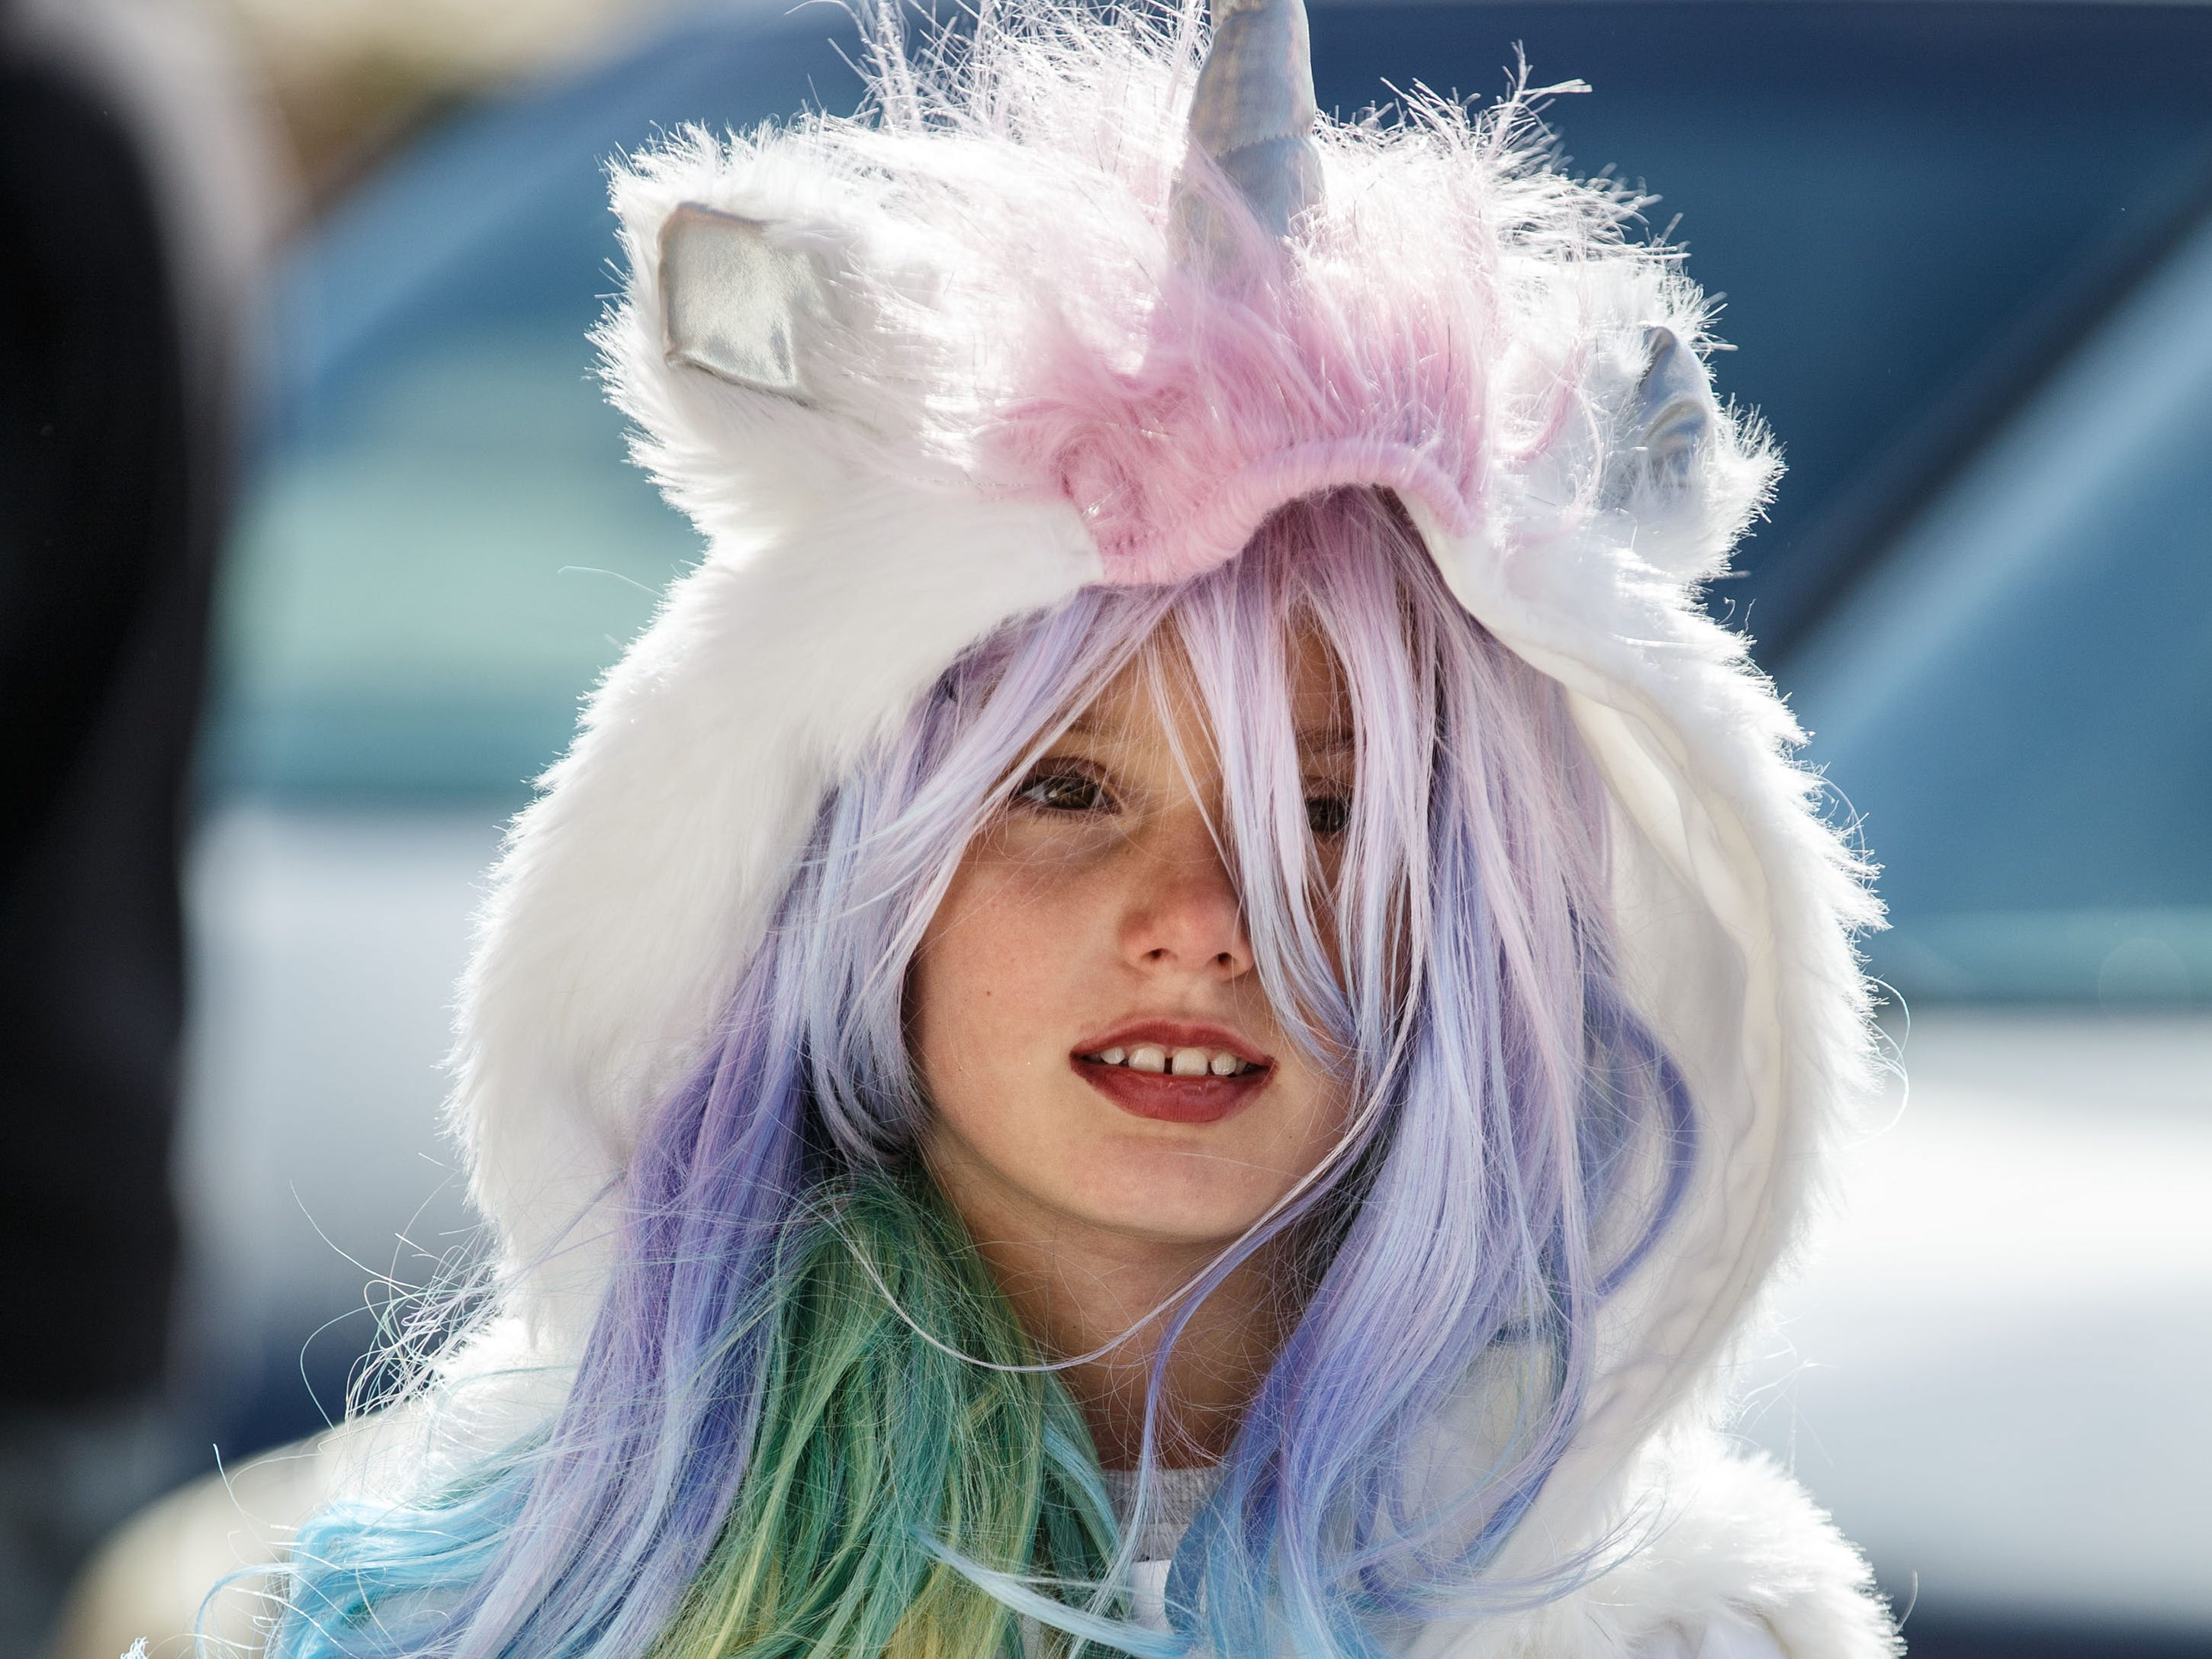 Isabella Brown, 9, of Pewaukee dressed up for trick-or-treating during the annual Halloween Fun Fest in downtown Pewaukee on Saturday, Oct. 20, 2018. The event, hosted by Positively Pewaukee, features a dog costume contest, trick-or-treating, games, crafts and fun from local nonprofits, churches and businesses.